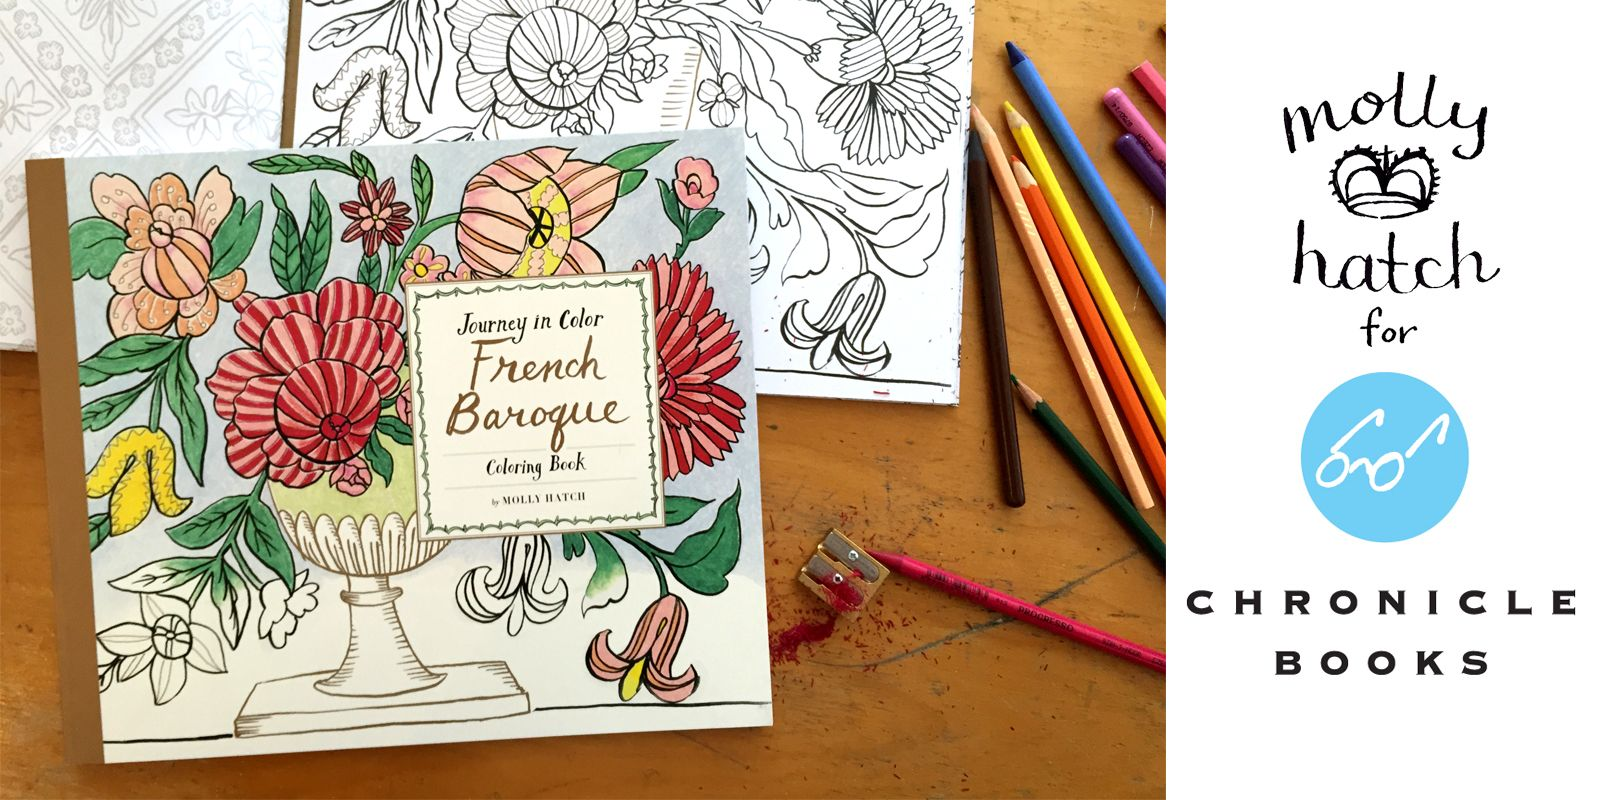 Molly hatch is an artist designer using her imagination and love of